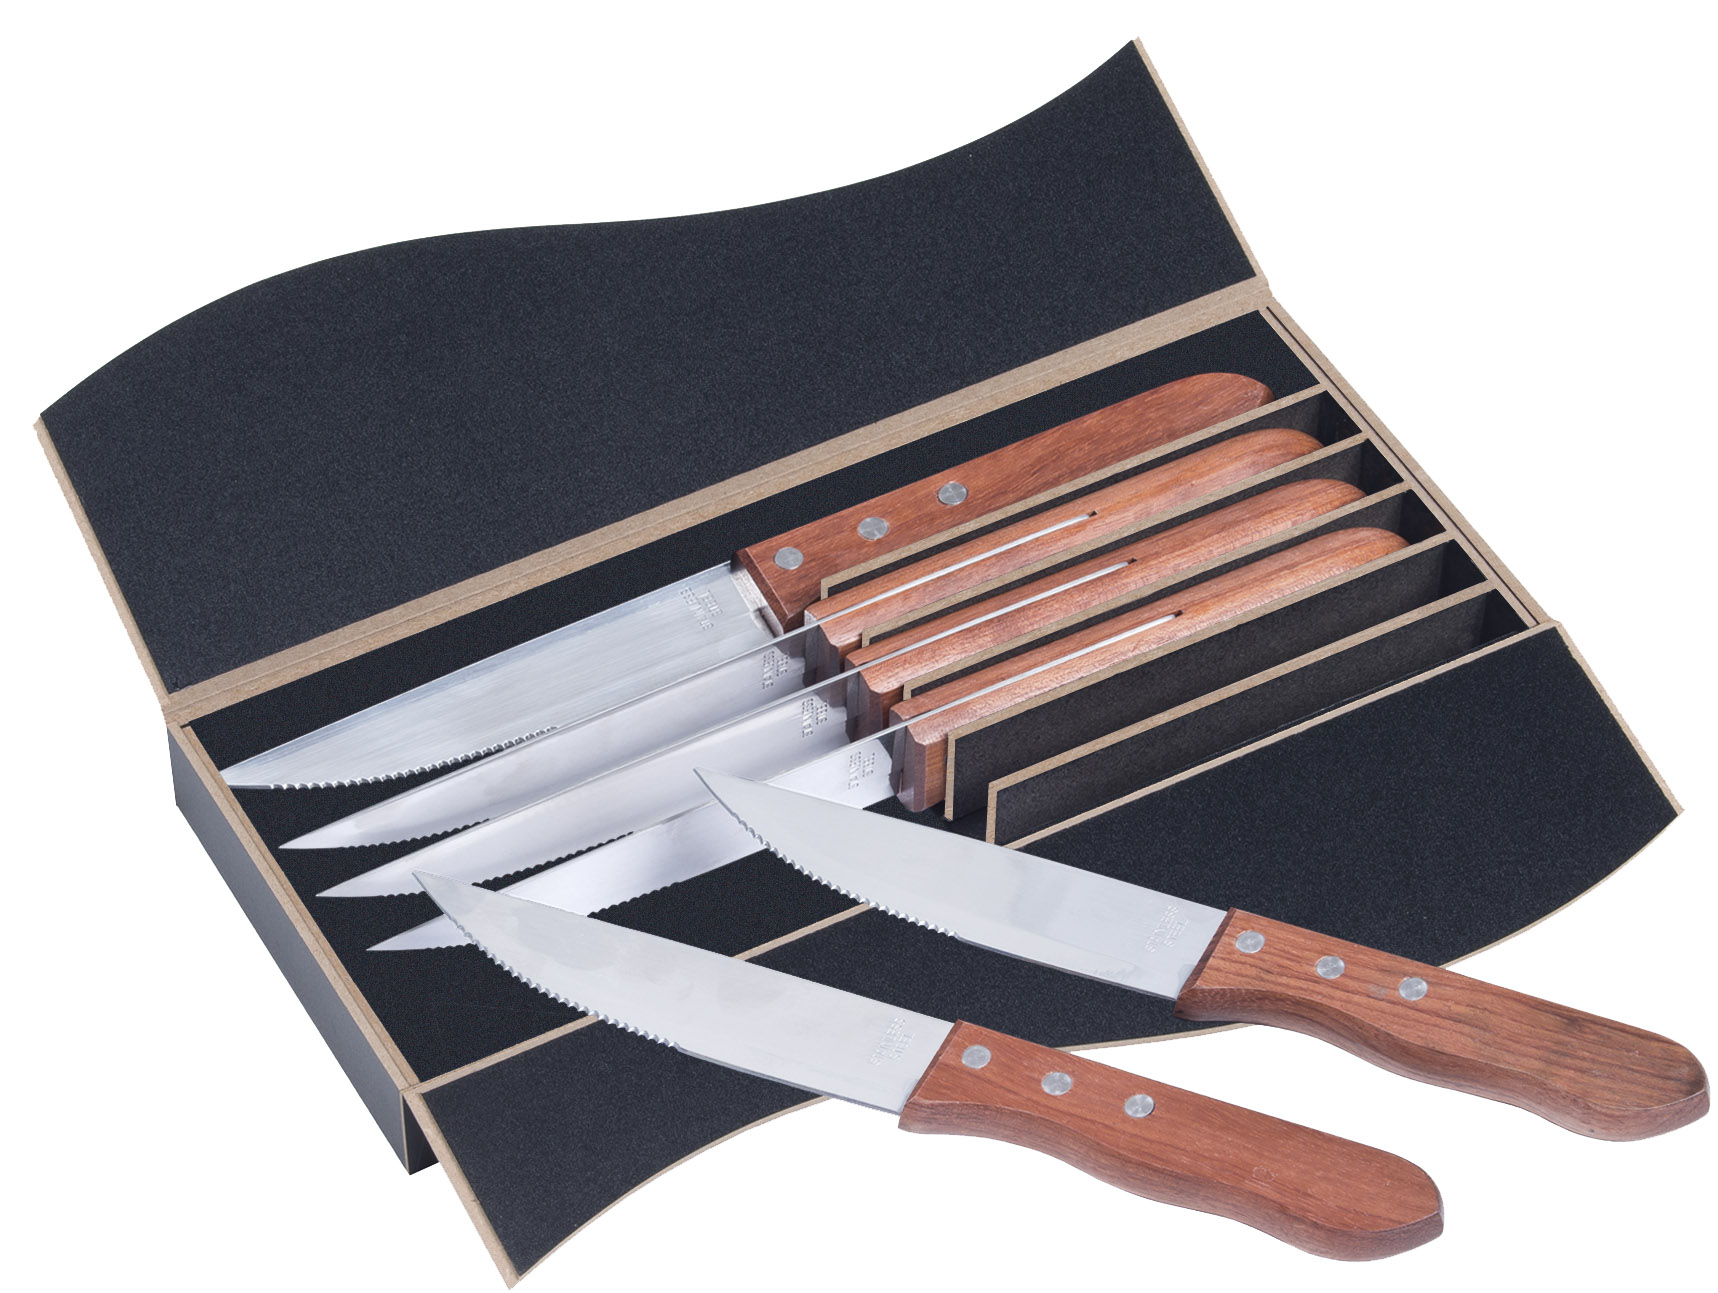 Promotional Product STEAK KNIFE 6 PCS SET